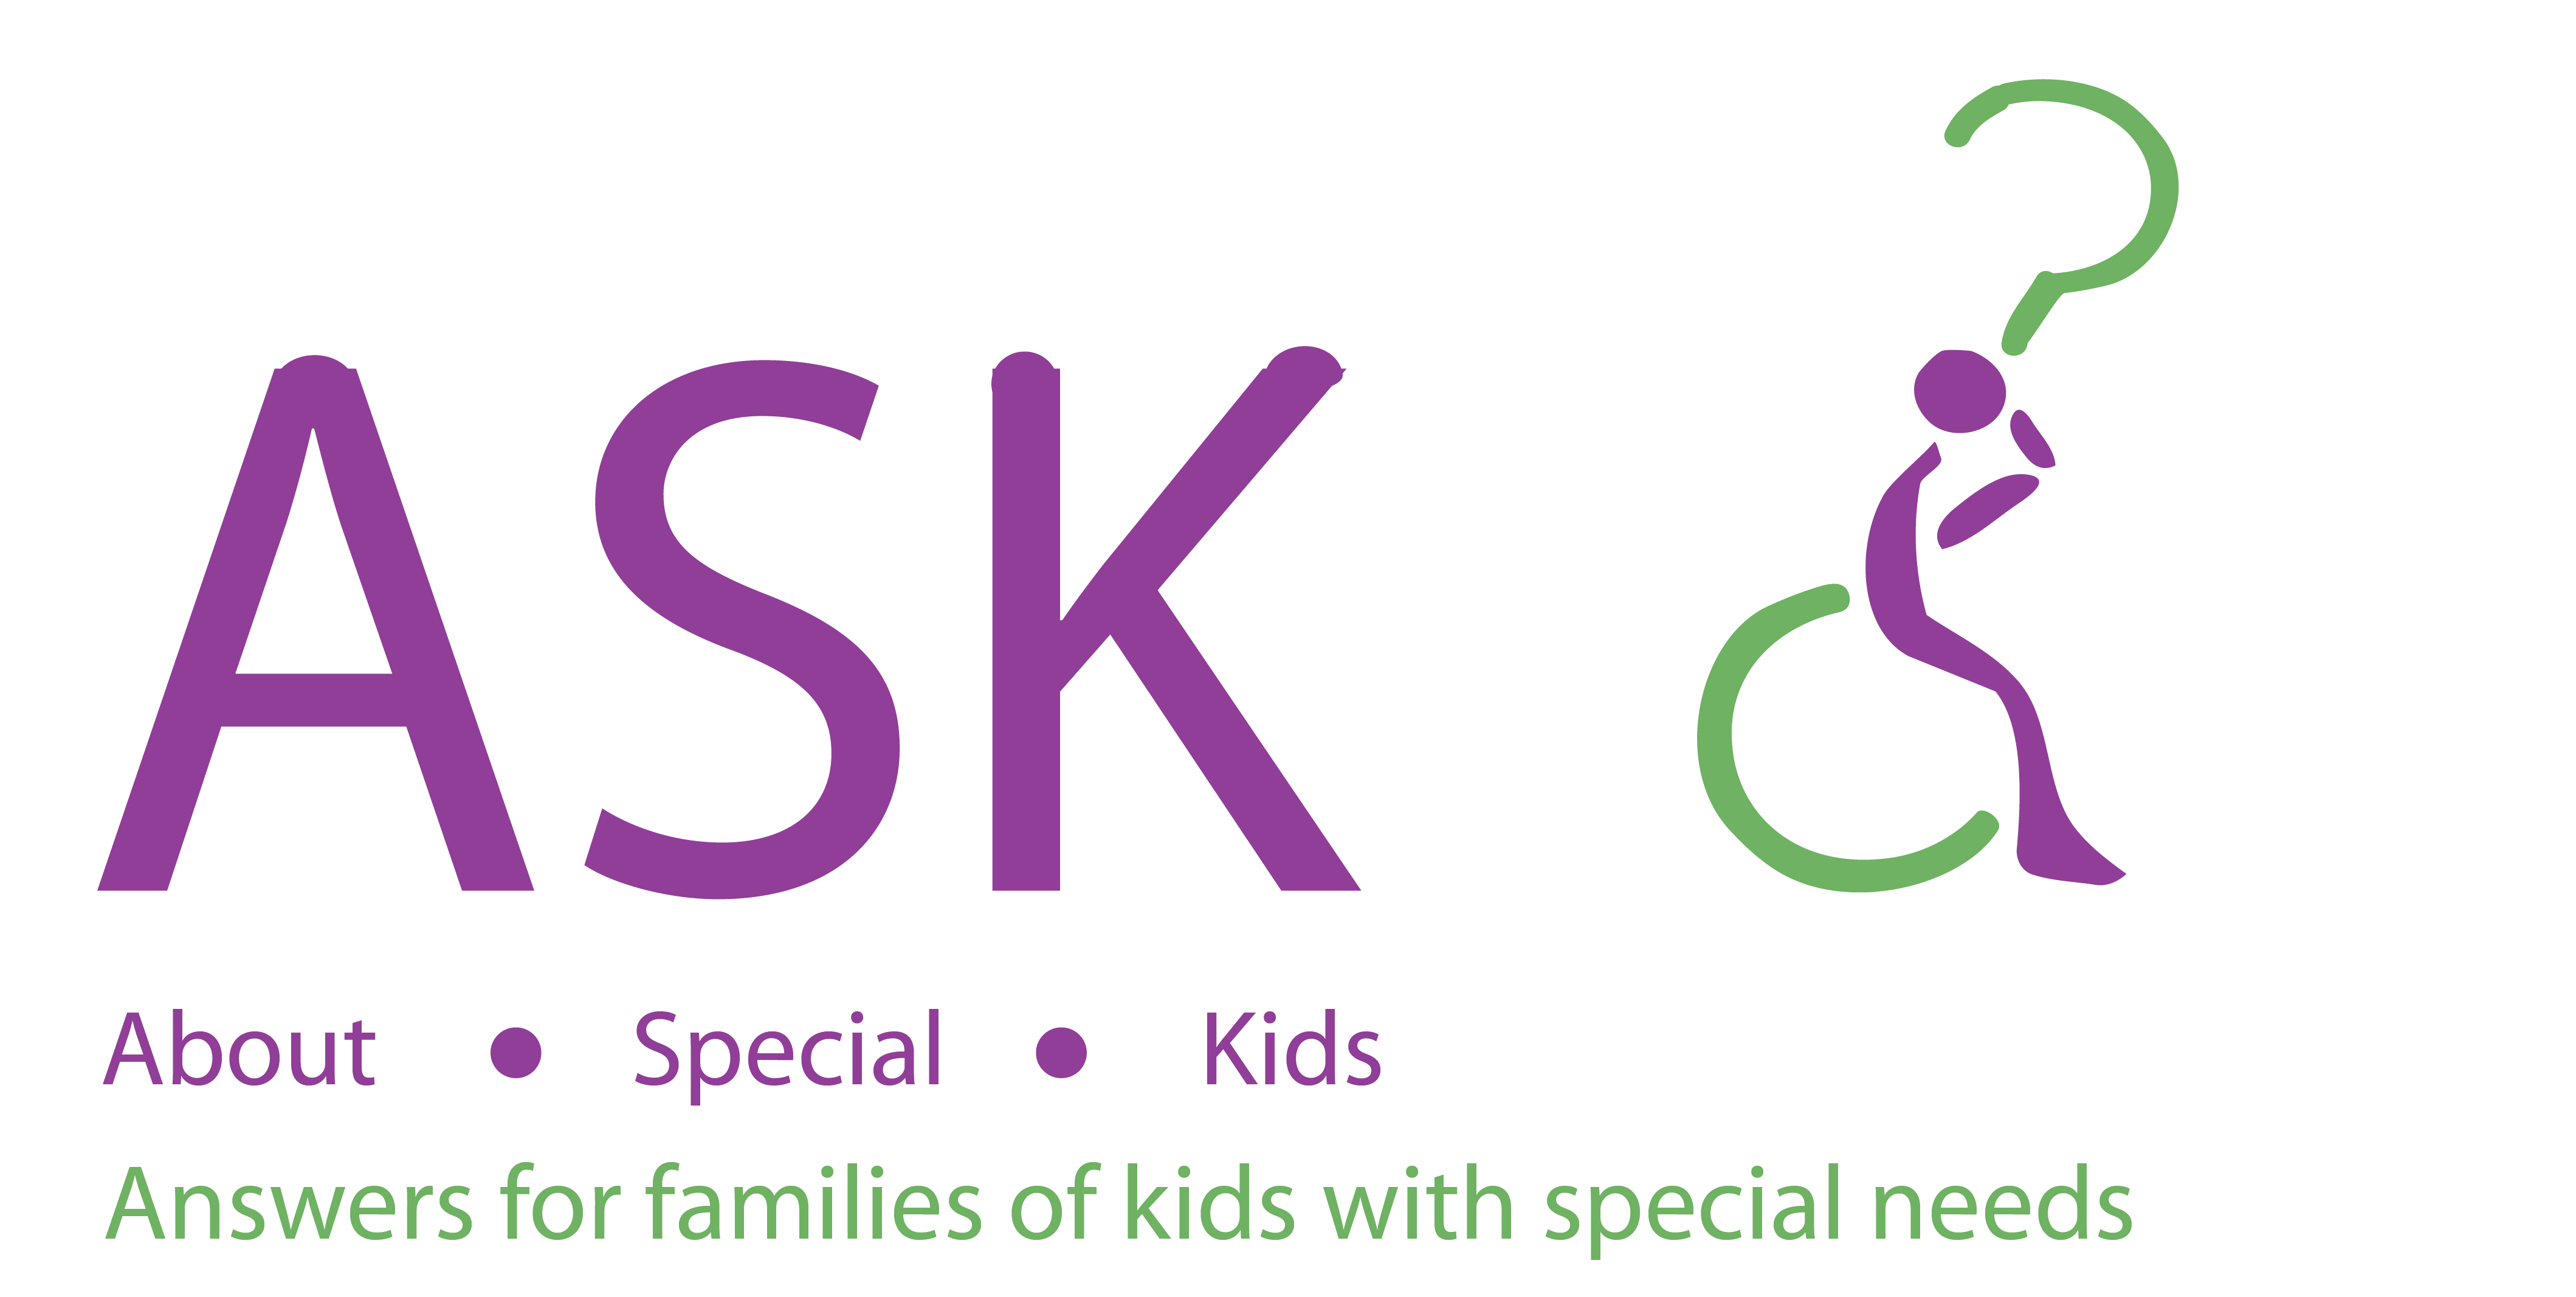 About Special Kids